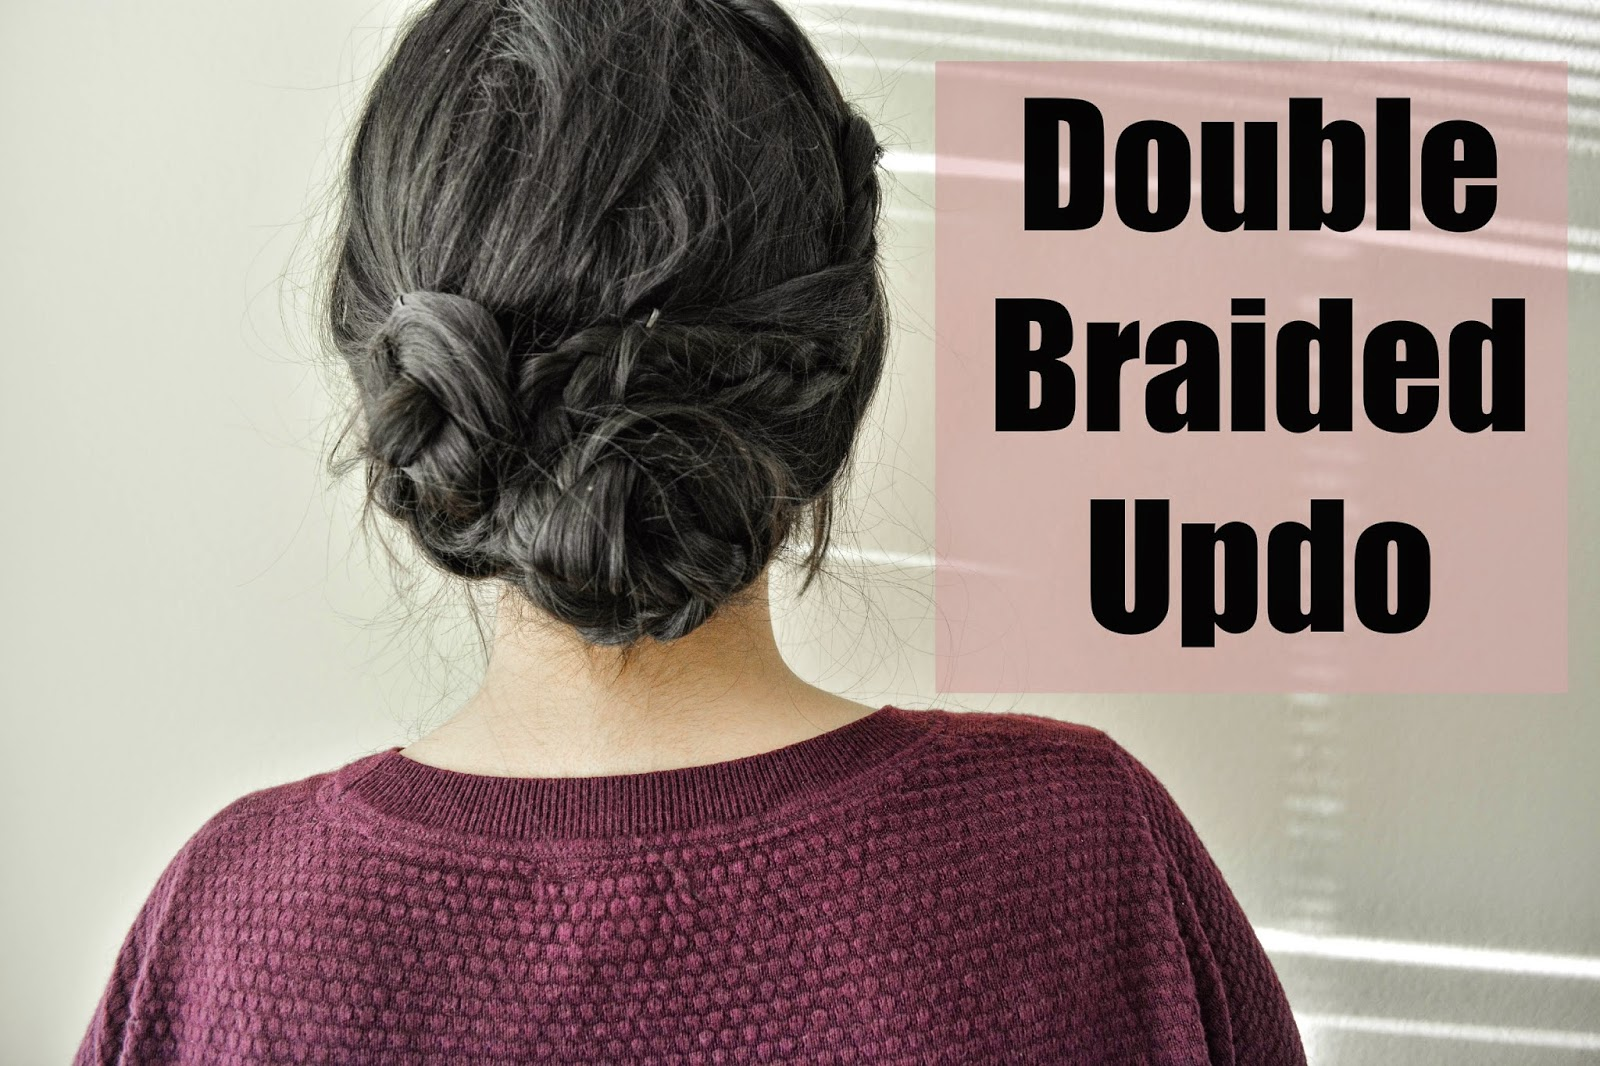 Double Braided Updo Hair Tutorial // Life with Rosie Blog